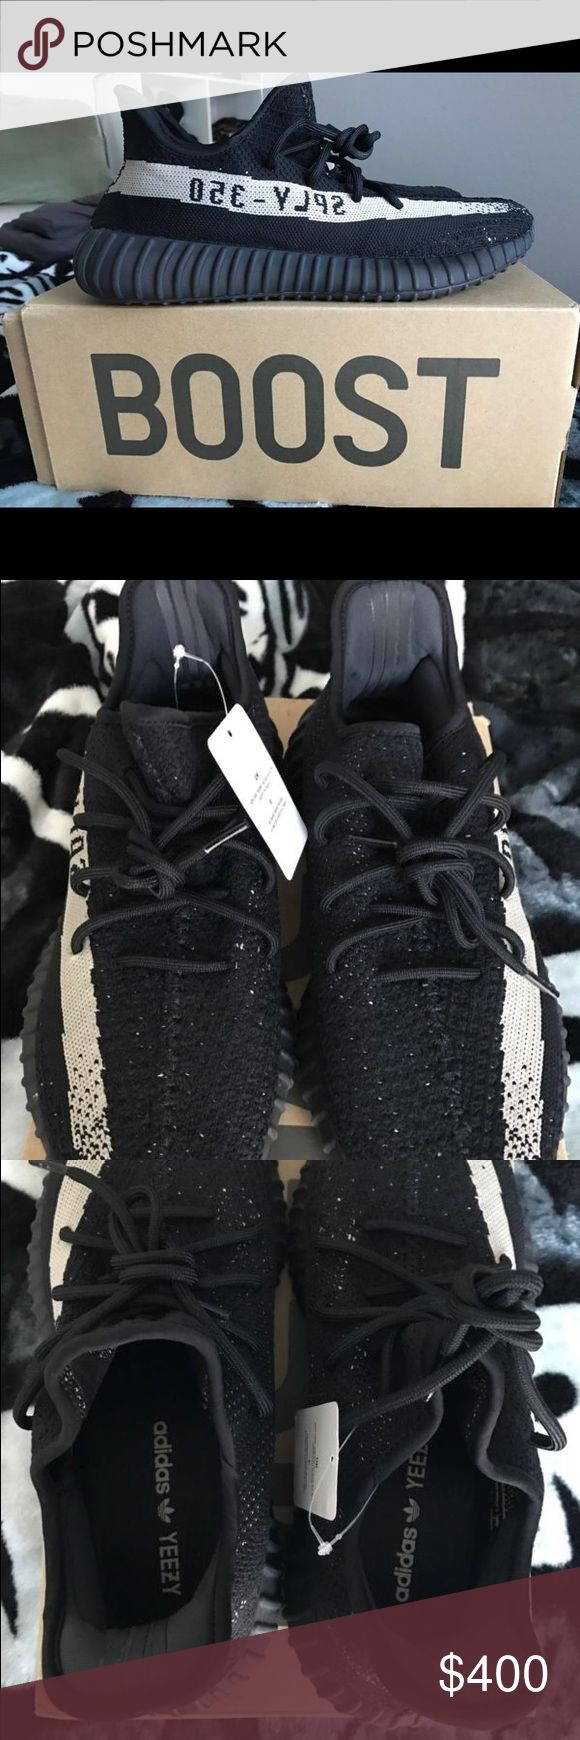 Adidas Yeezy 350 V2 Boost Low SPLY Kanye West Adidas Yeezy 350 V2 Boost Low SPLY Kanye West Black White Oreo Yeezy Shoes Sneakers